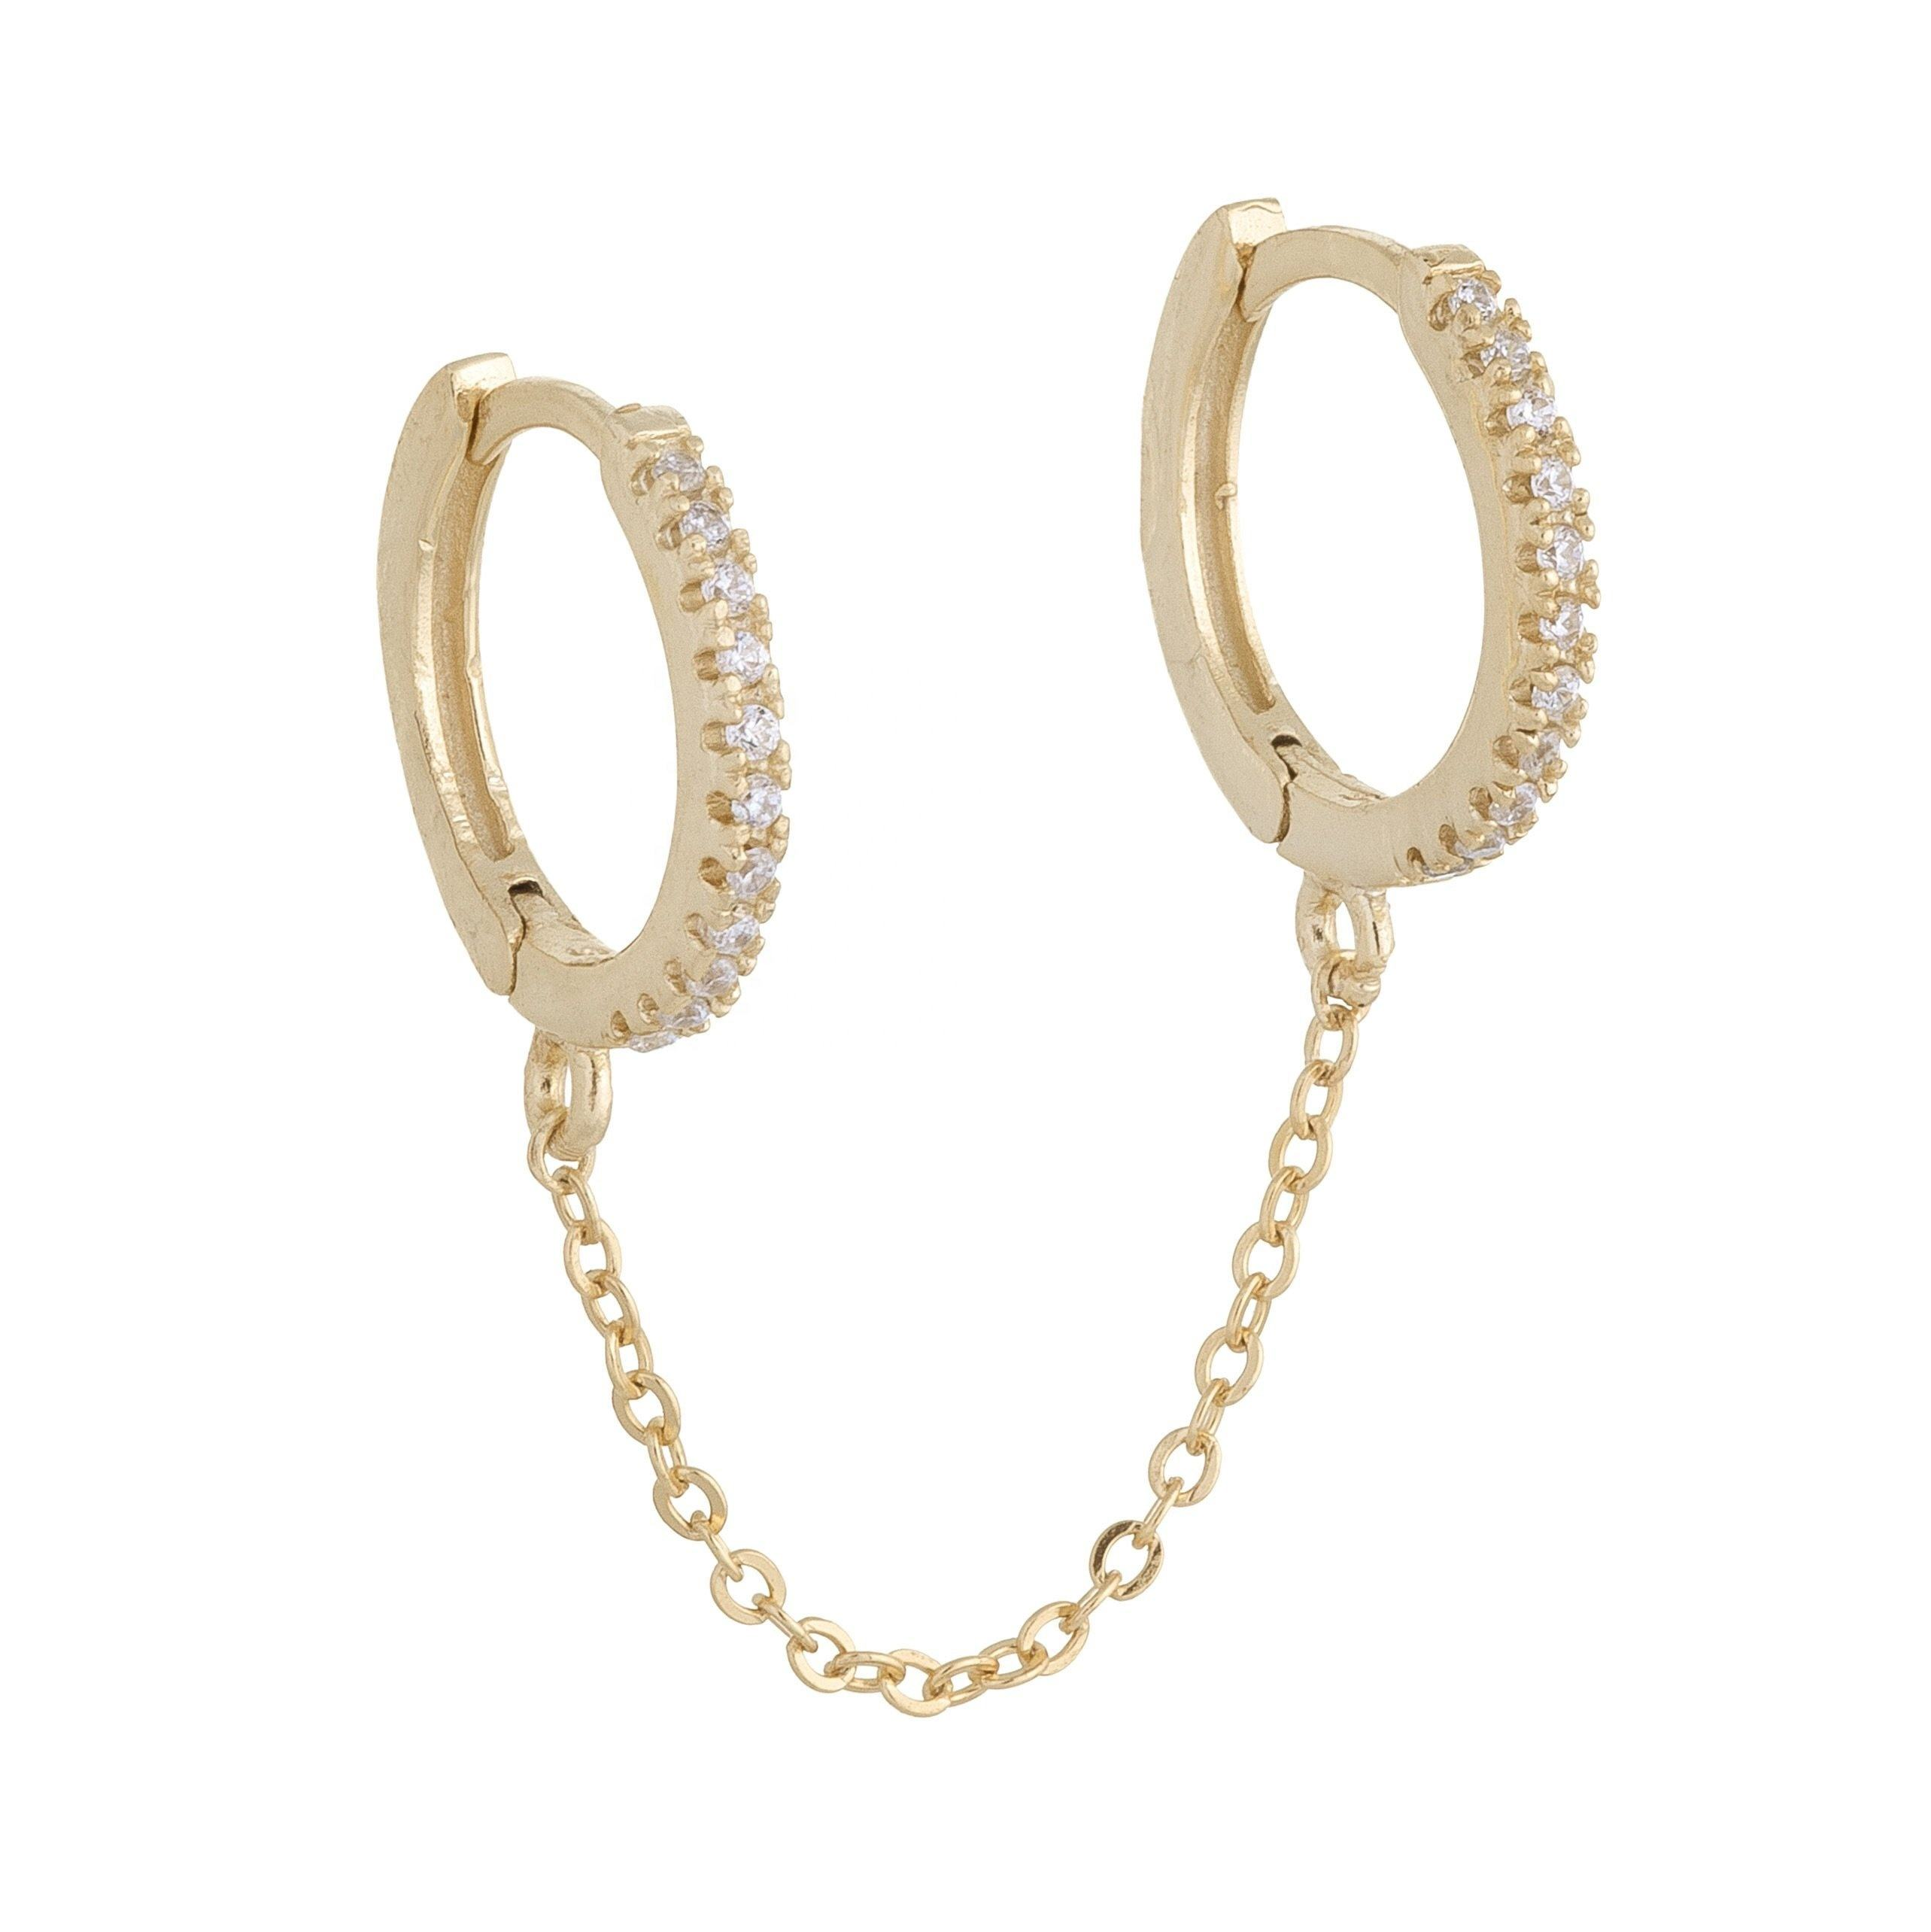 2 hole double piercing mini cz circel hoop with chain earring